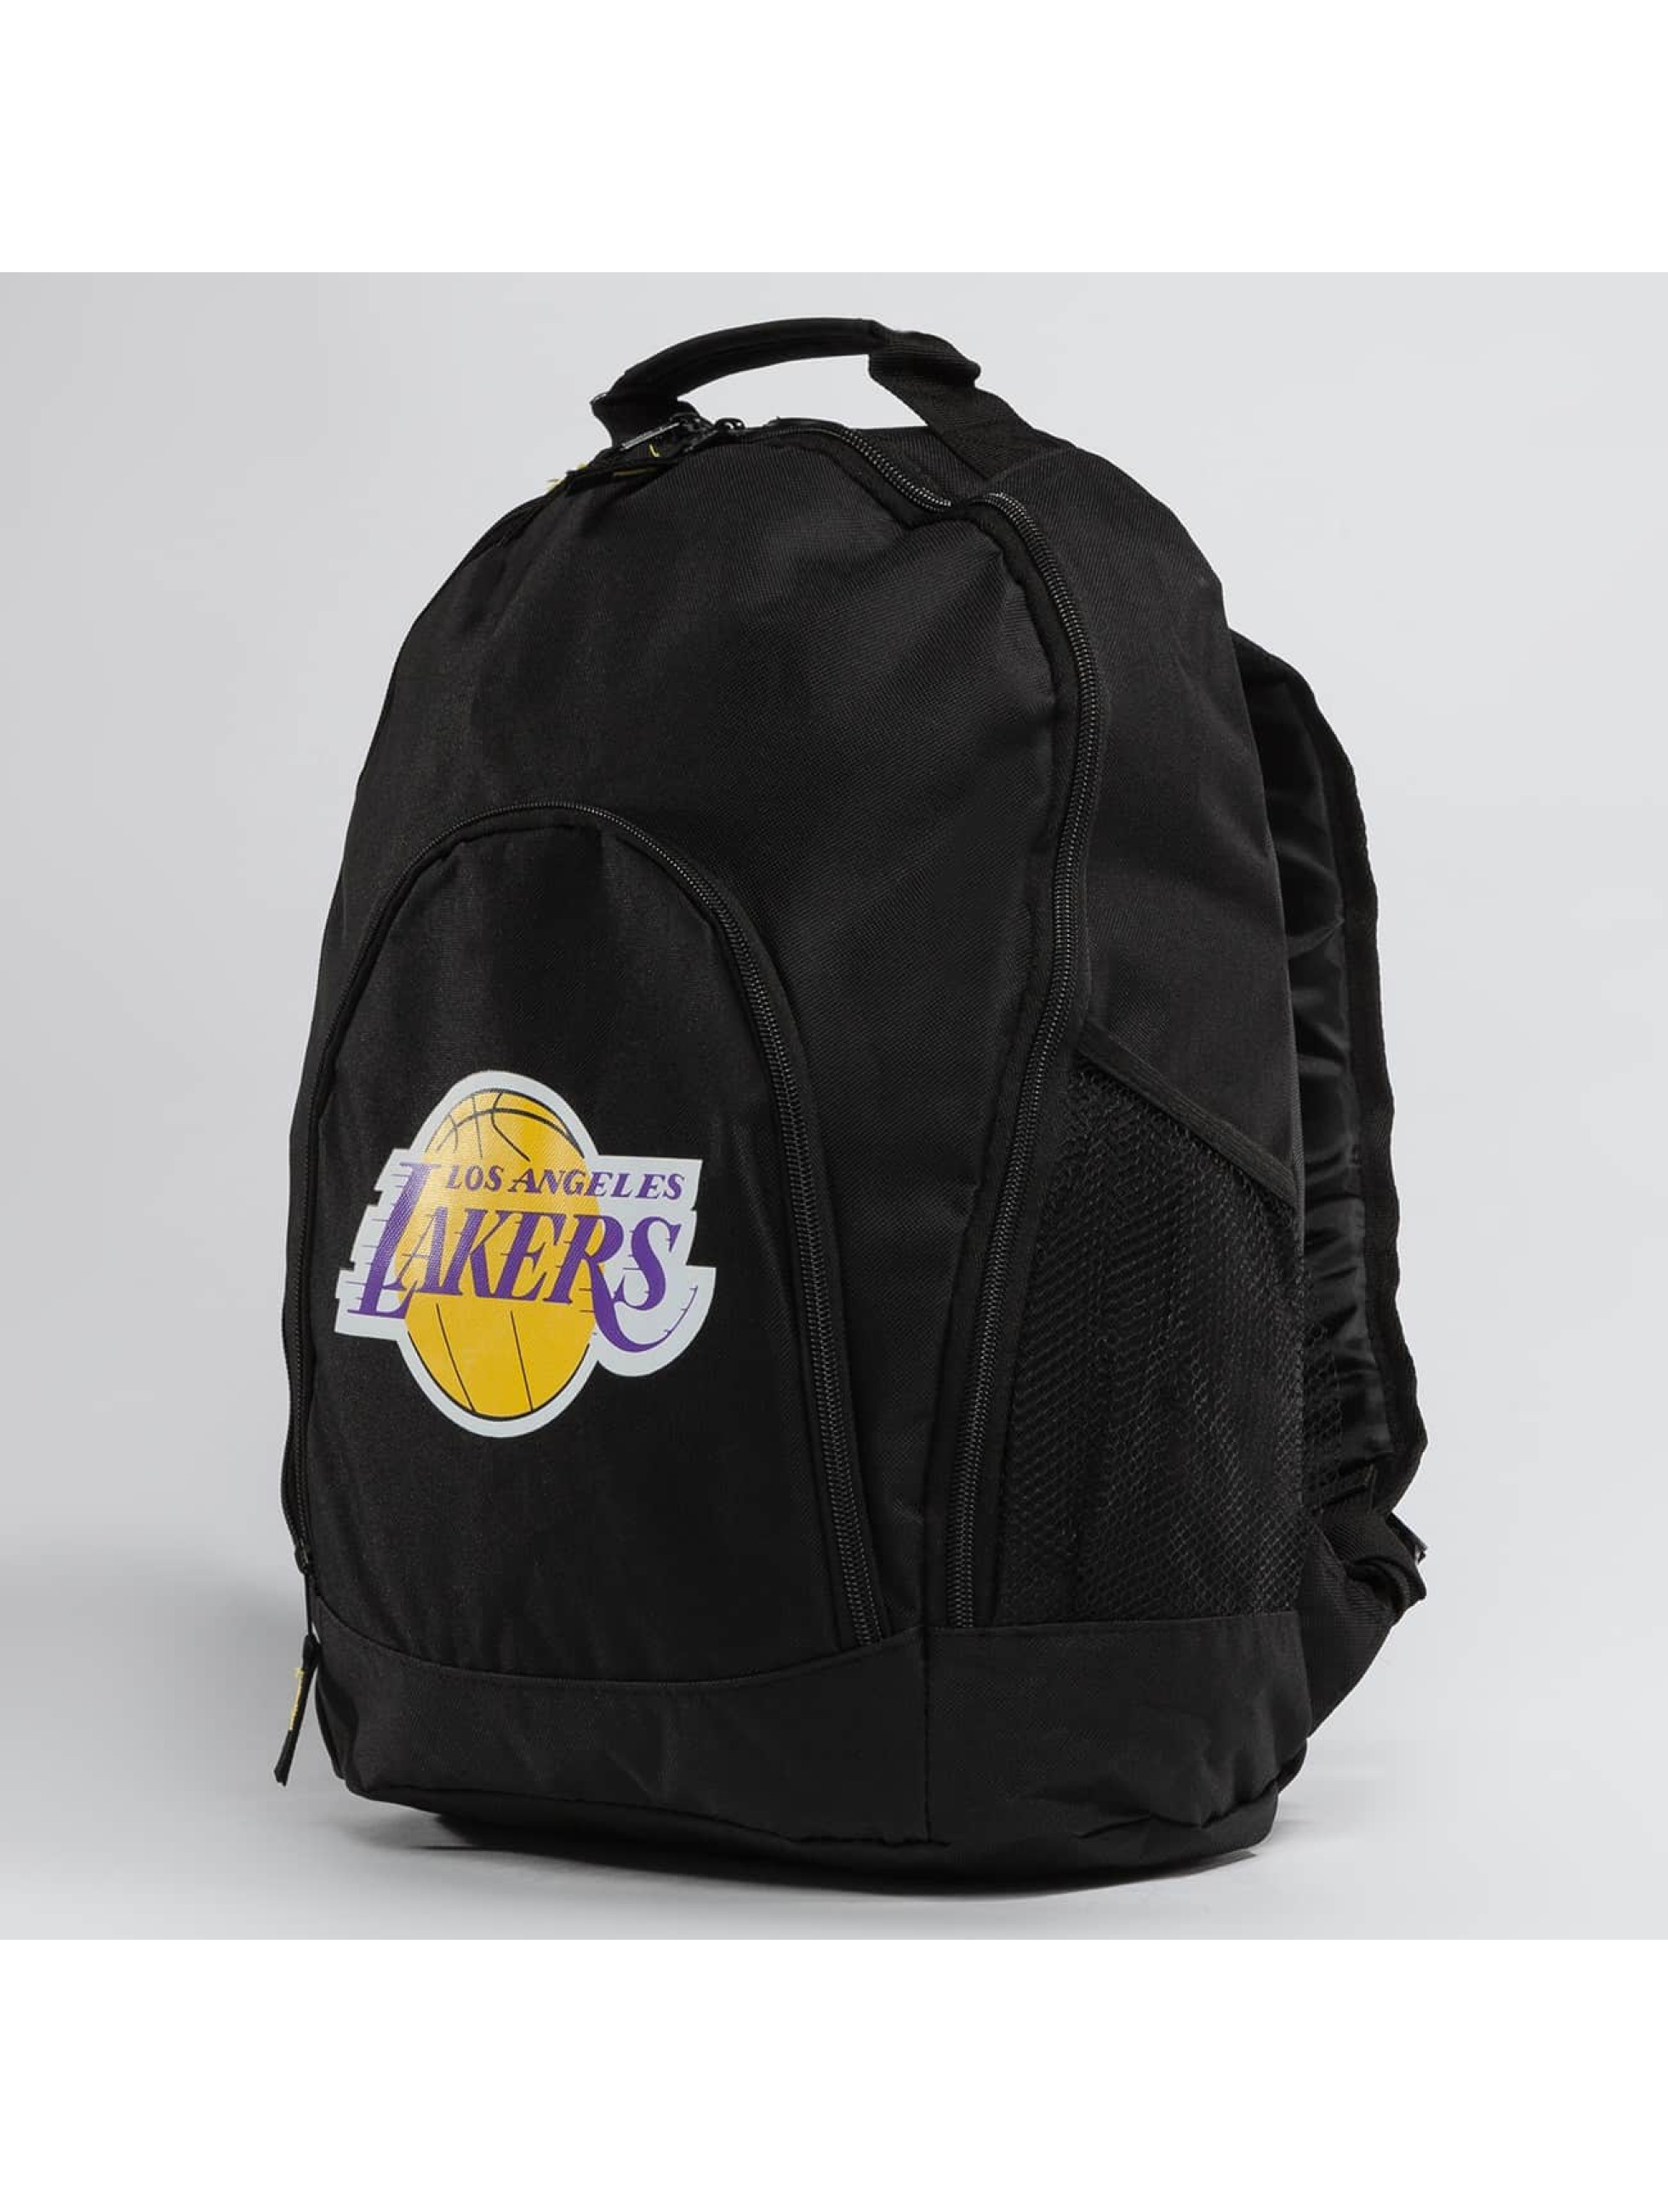 Forever Collectibles rugzak NBA LA Lakers zwart